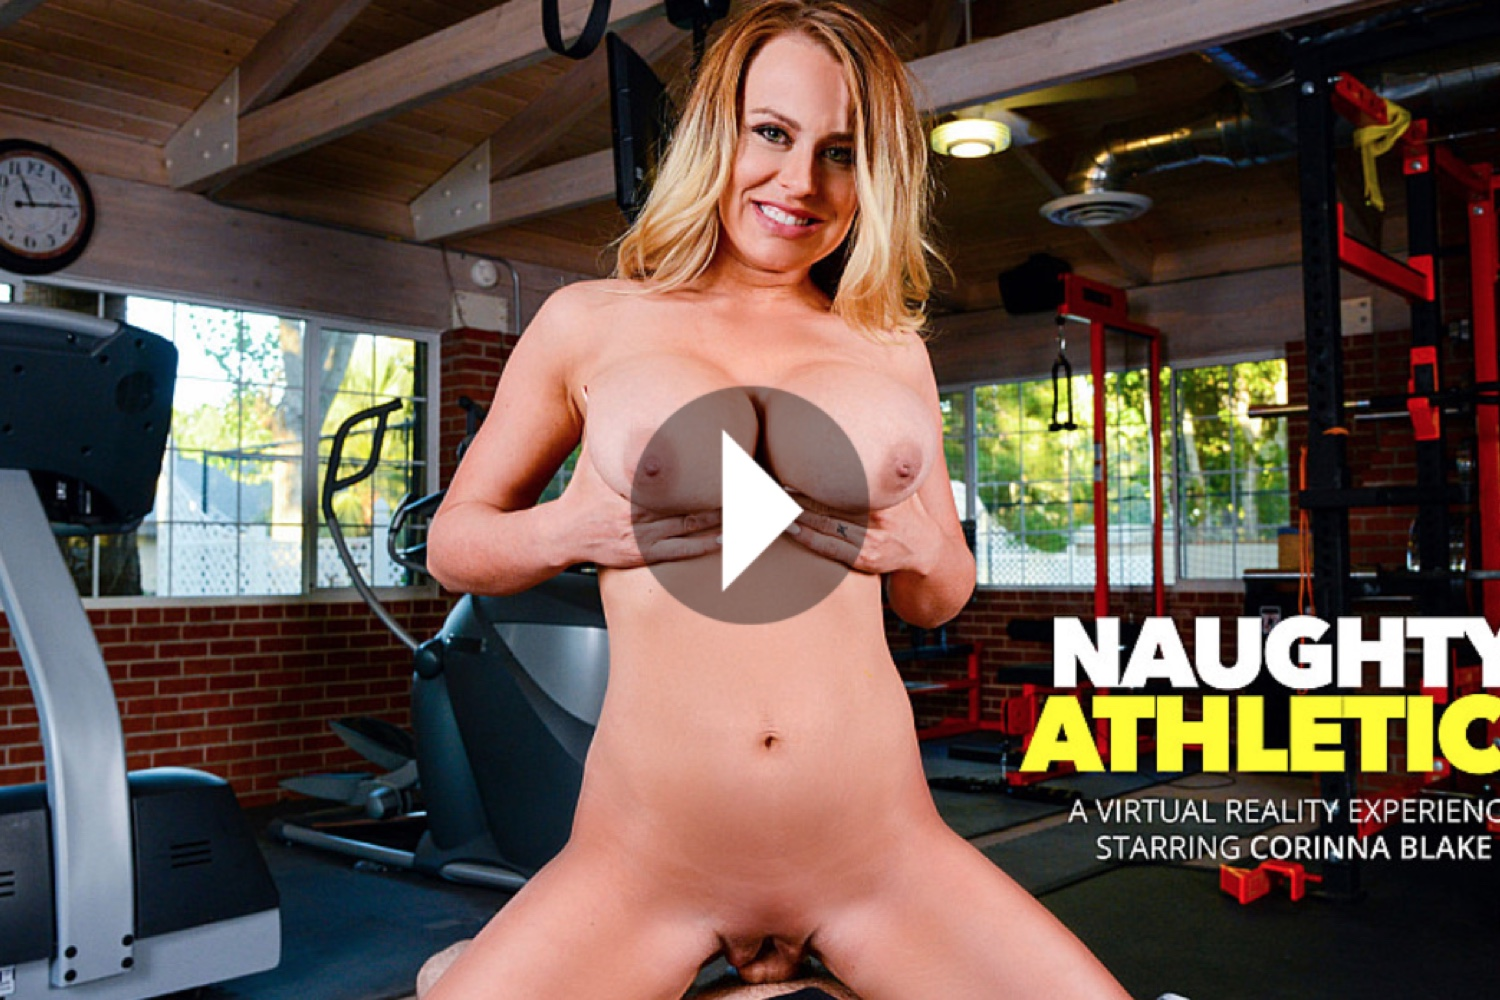 Naughty Athletics - Corinna Blake VR Porn - Corinna Blake Virtual Reality Porn